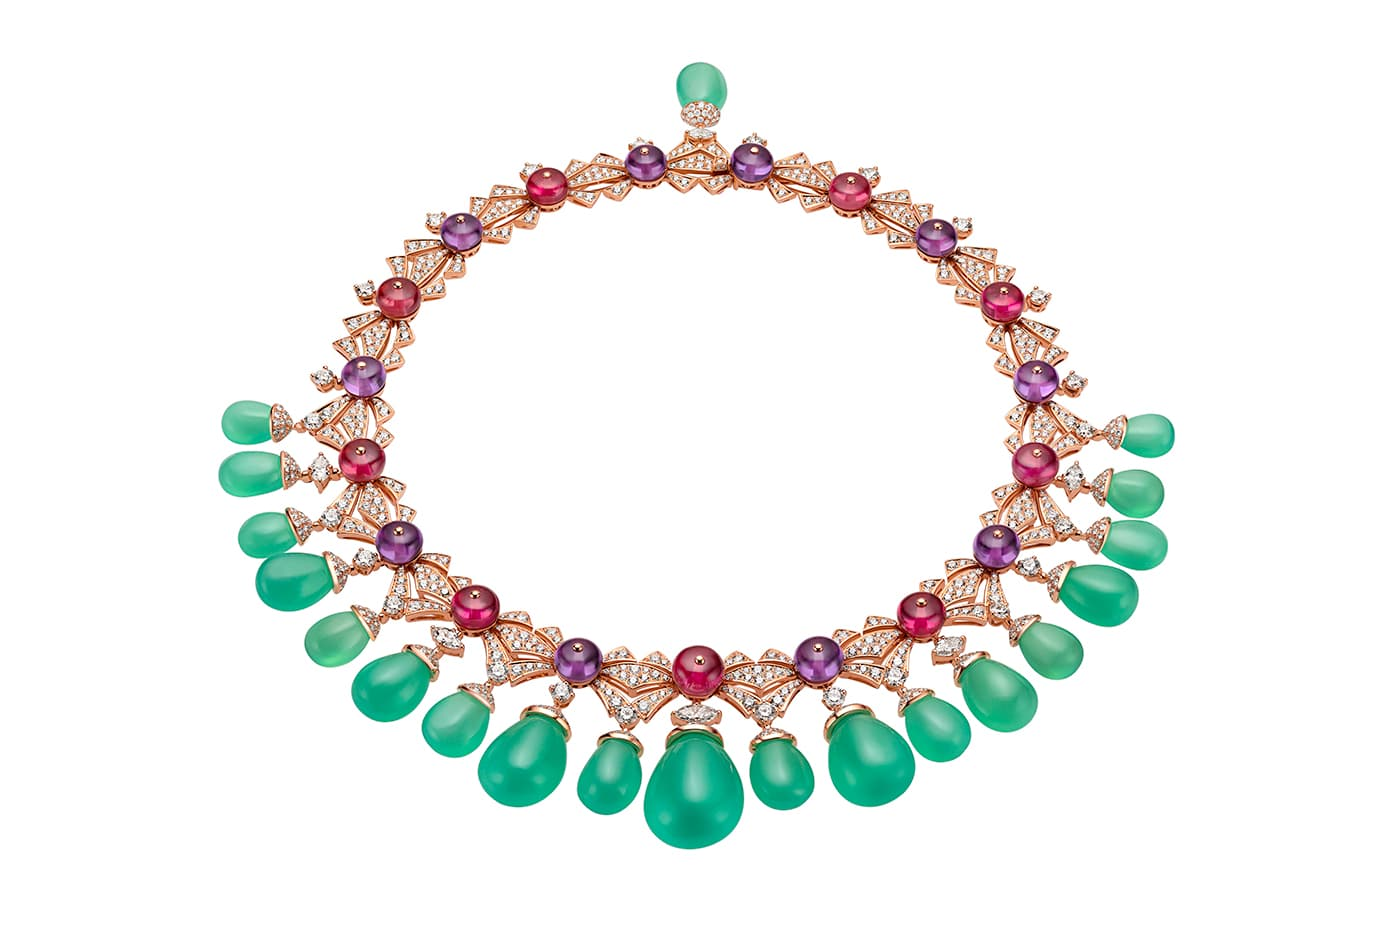 Bvlgari 'Cinemagia' collection 'Charming Sirens' necklace with over 220ct chrysoprase, amethyst, rubellite and diamonds in rose gold